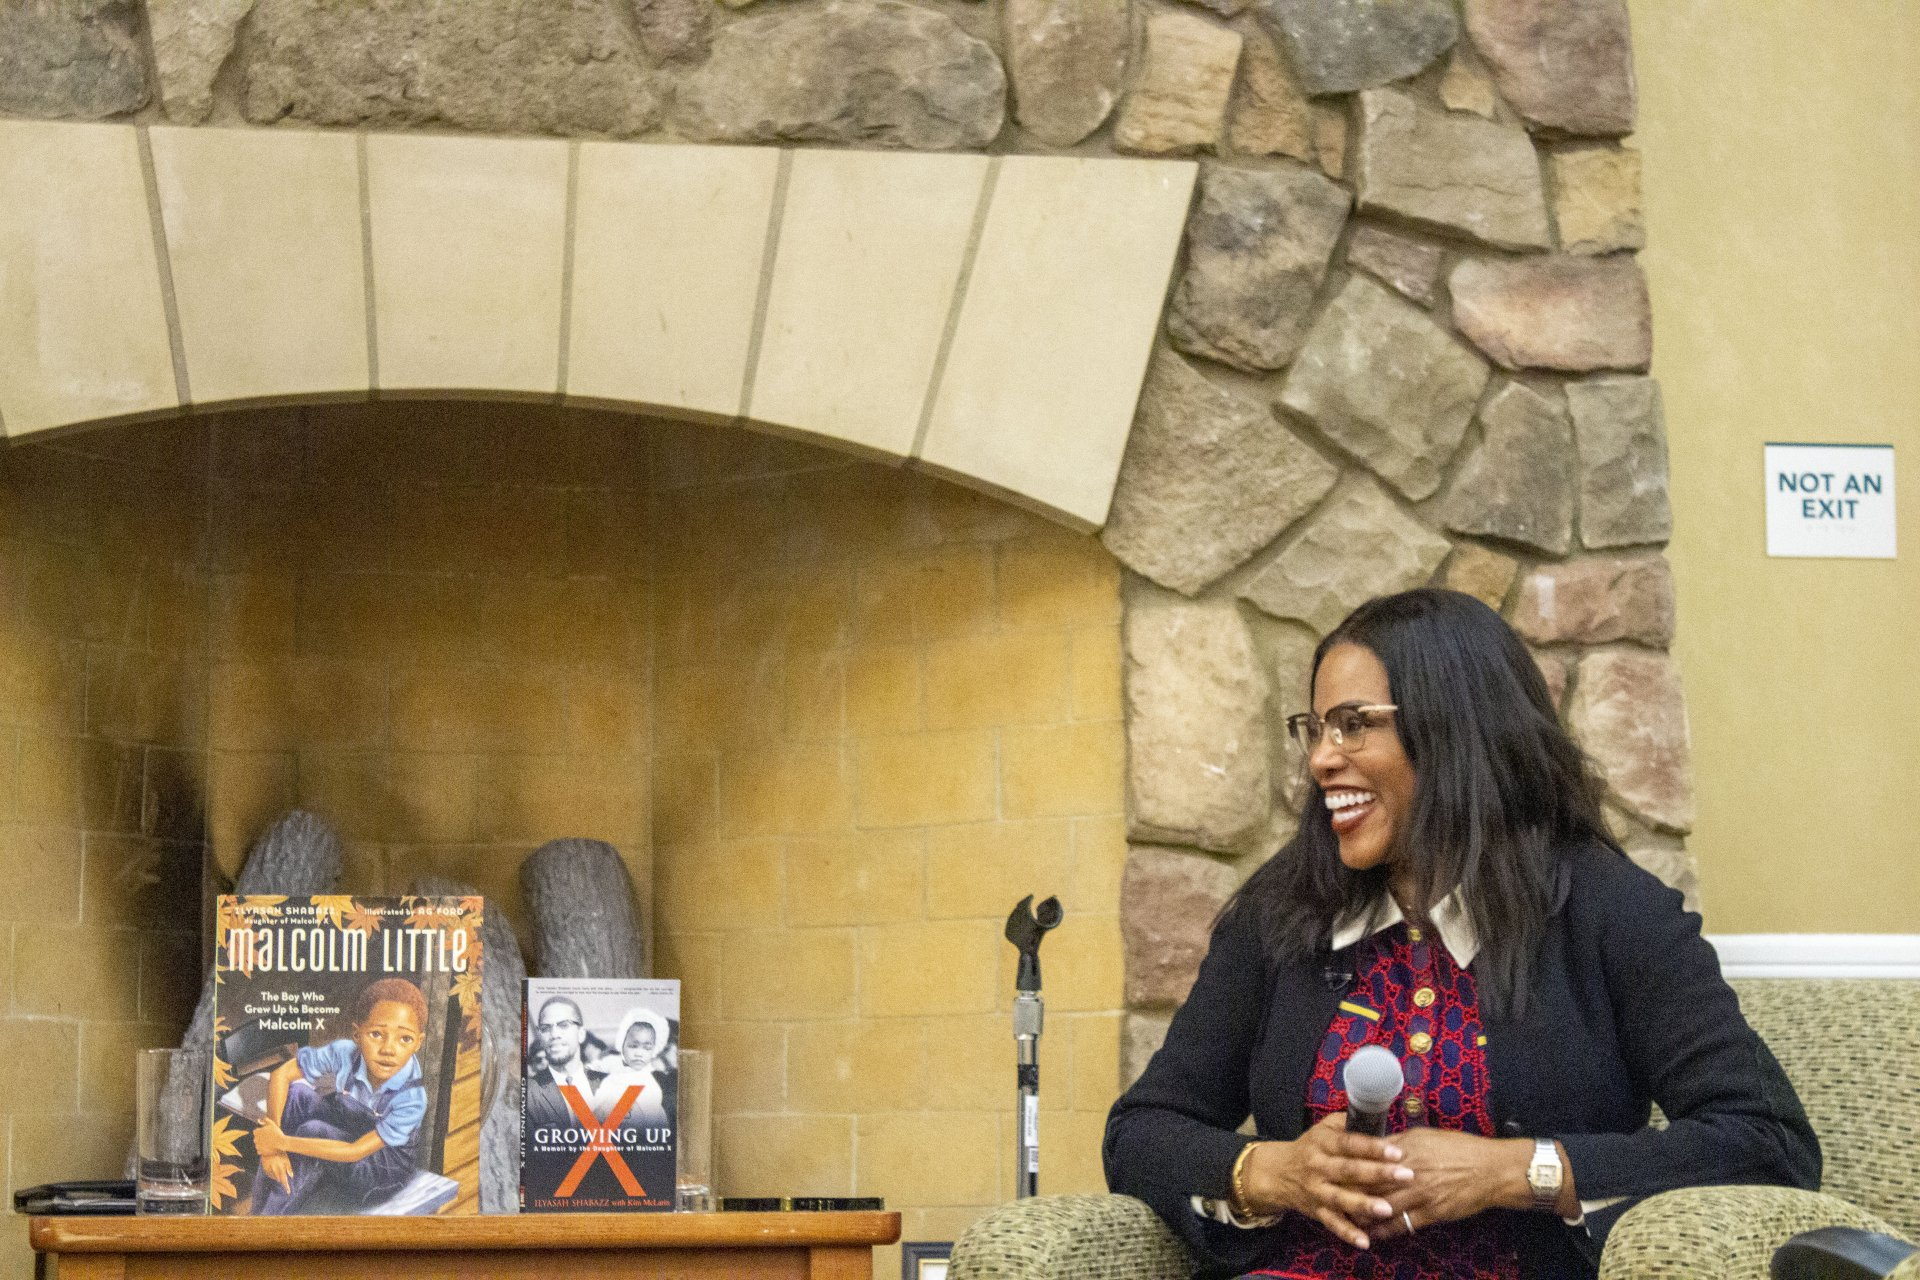 Ilyasah Shabazz on Feb. 12 in the Great Hall at Humboldt State discussing her book and what it was like growing up as Malcolm X's daughter. | Photo by Sarah Blunt